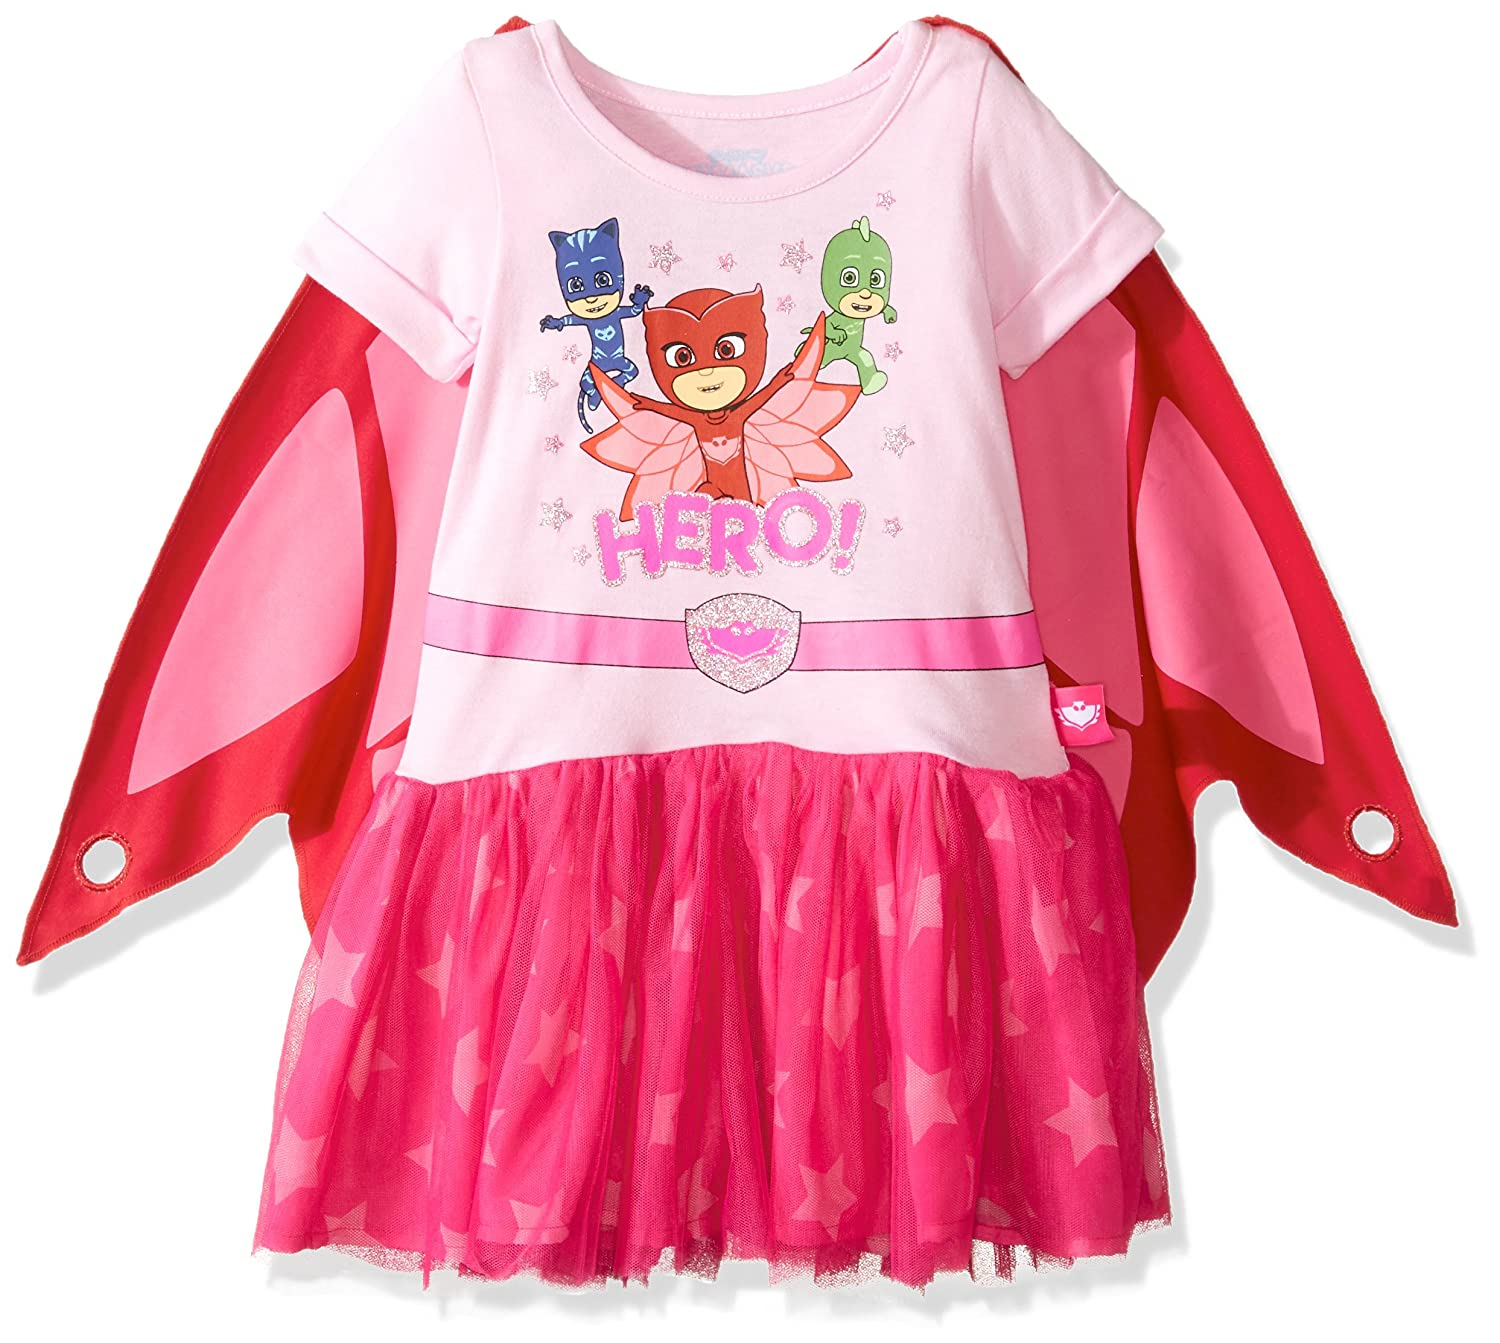 PJ Masks Eva Owlette Tutu Dress With Wings 2T: Amazon.es: Ropa y accesorios